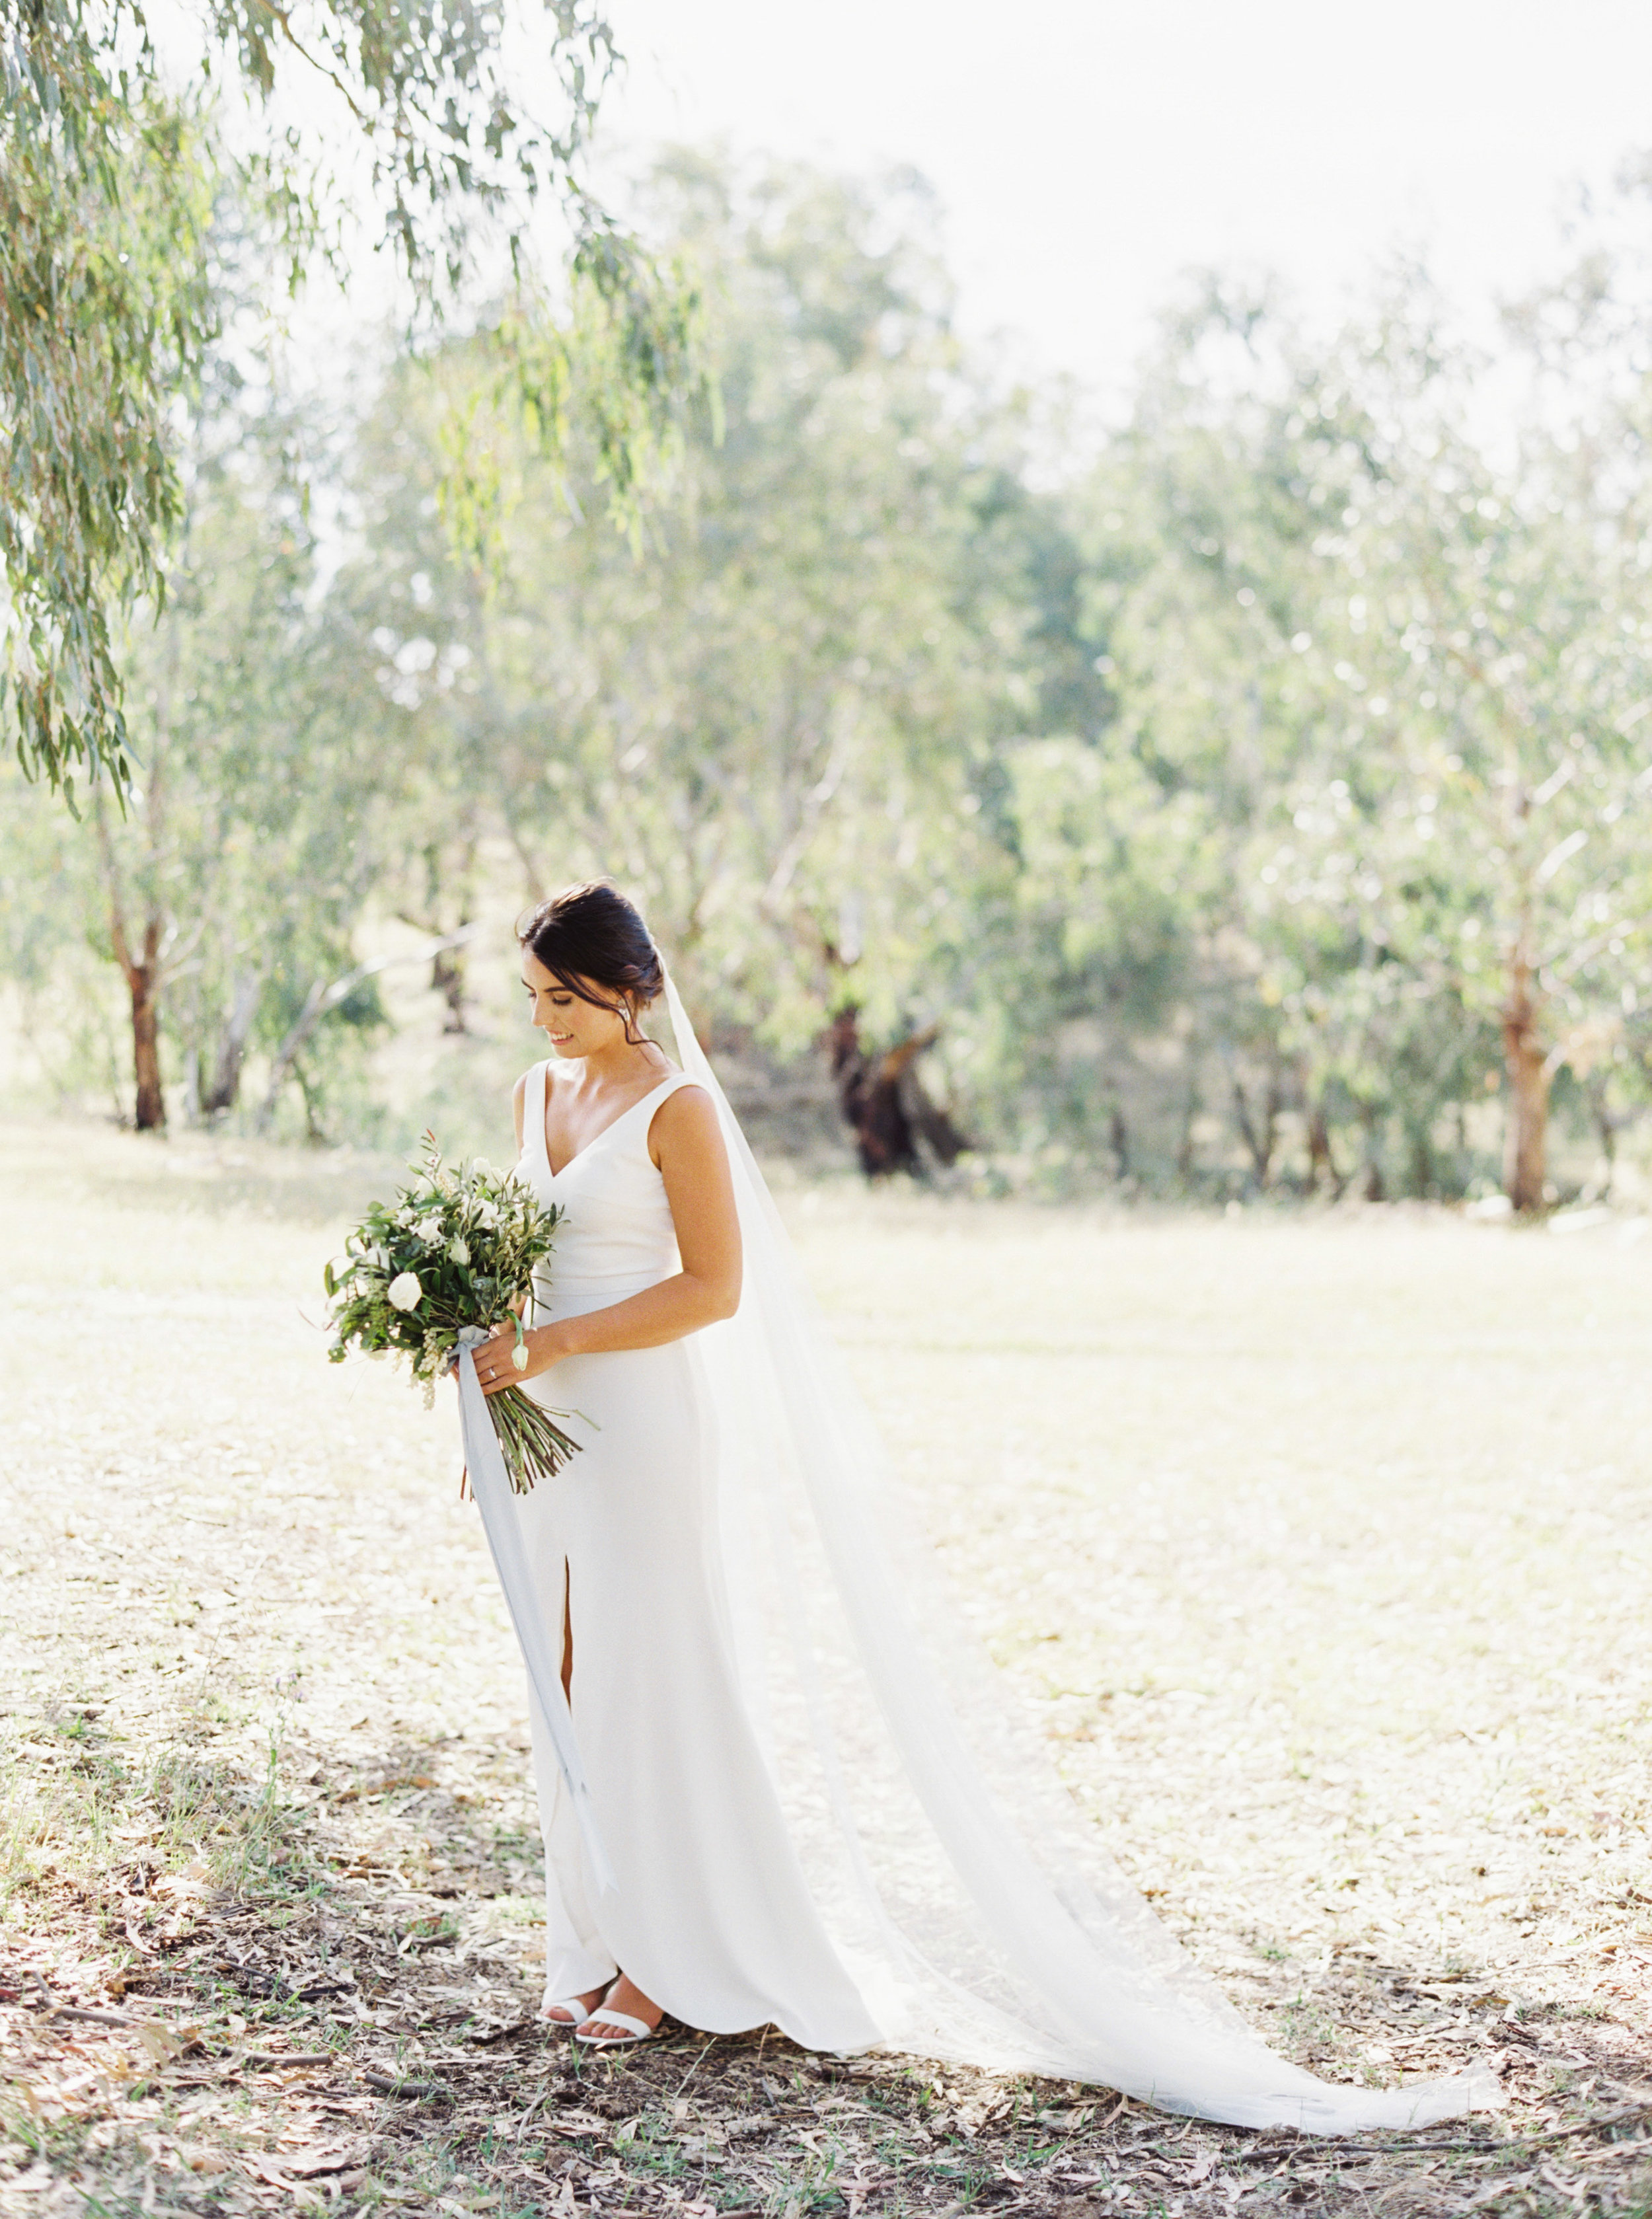 00039- Olive Tree Mediterranean Wedding in Mudgee NSW Australia Fine Art Film Wedding Lifestyle Photographer Sheri McMahon_.jpg